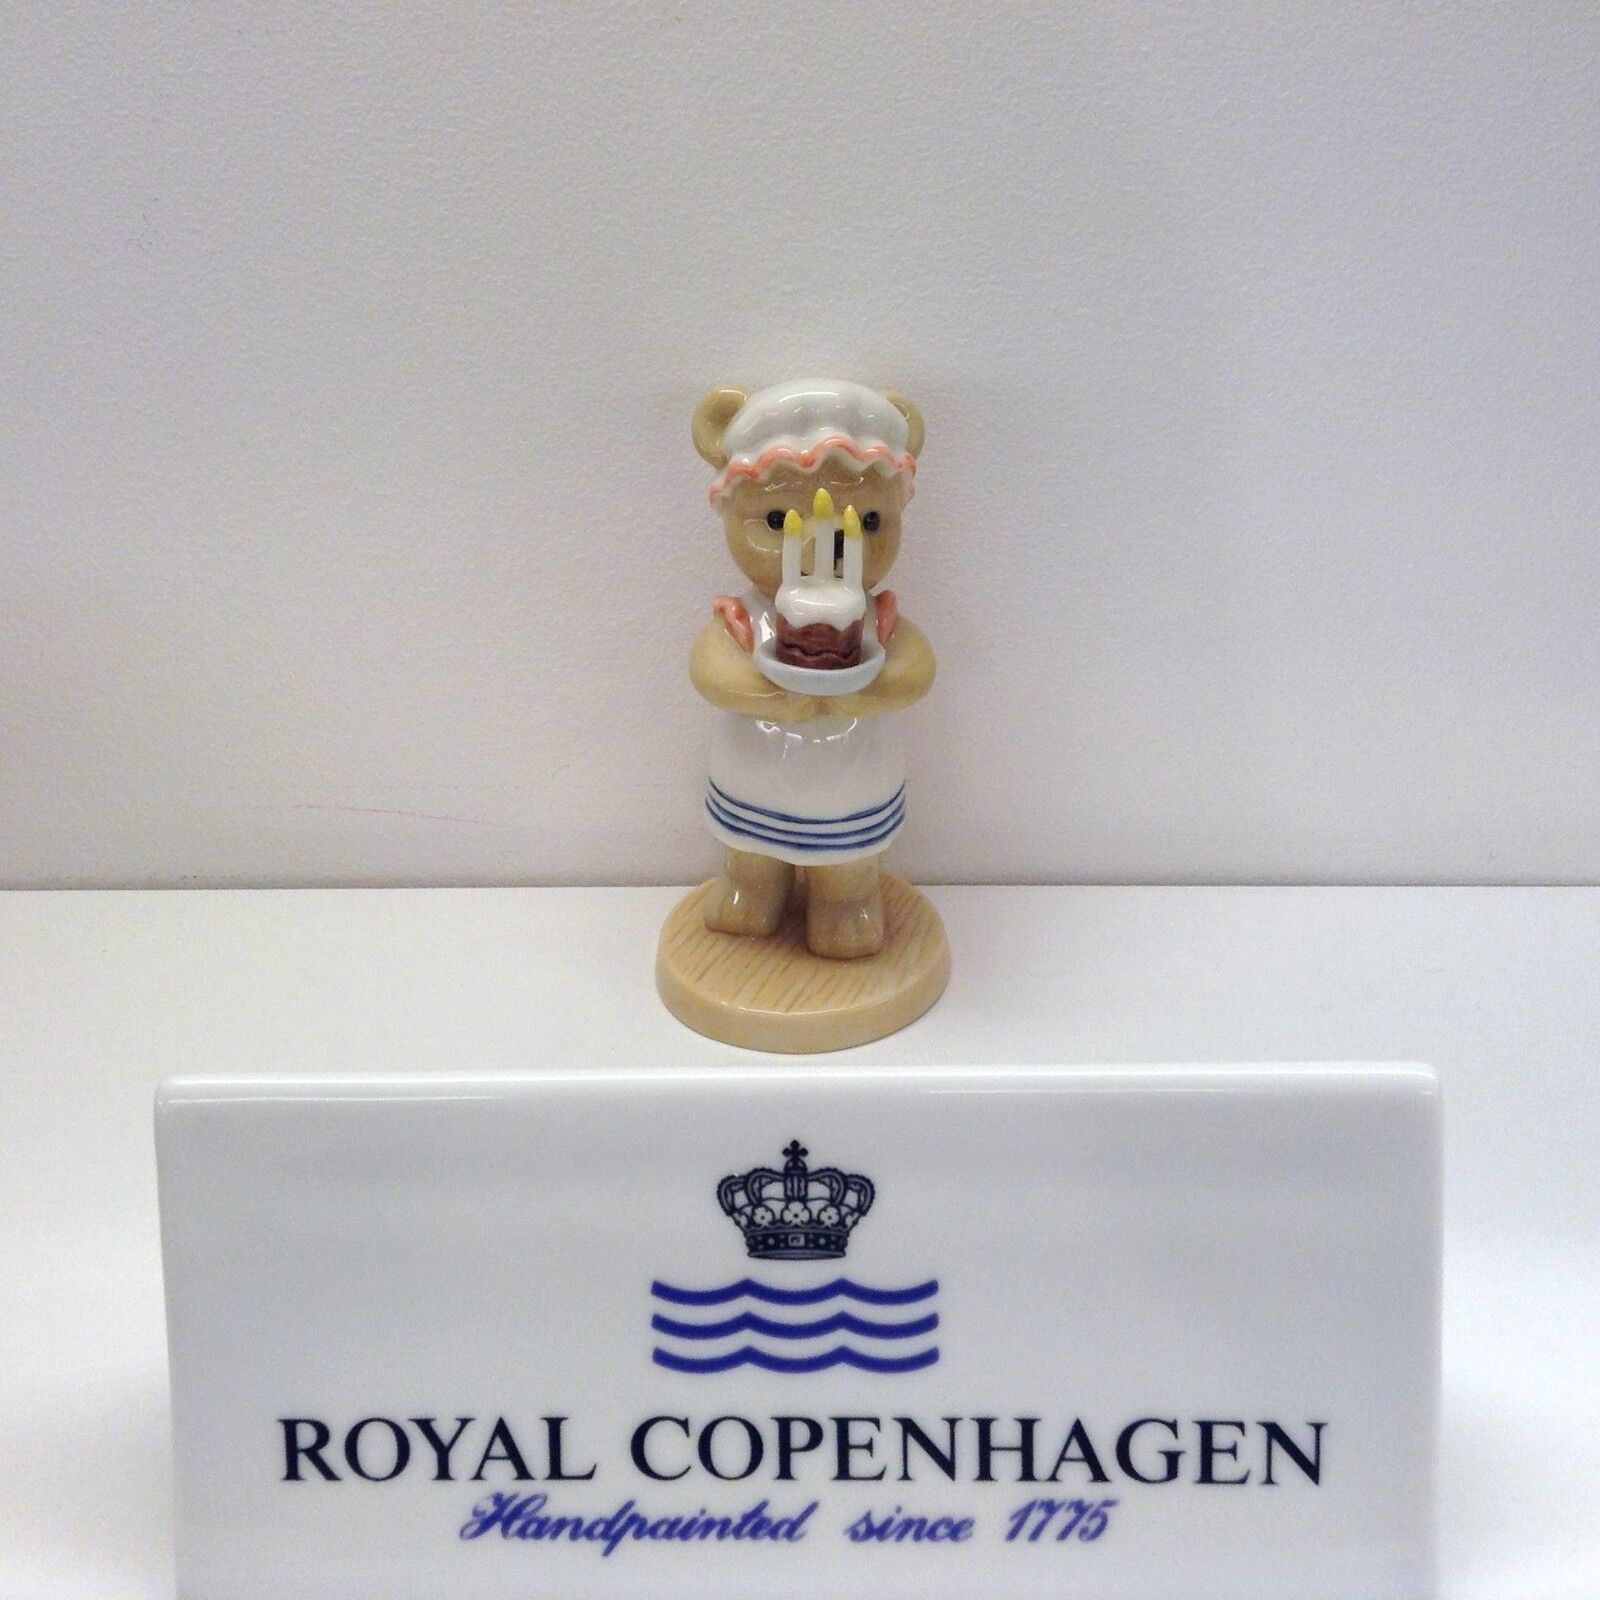 Royal Copenhague Autocollants Victoria 2004 & Annuel Teddy Bear Bing & 2004 Grondahl c760eb